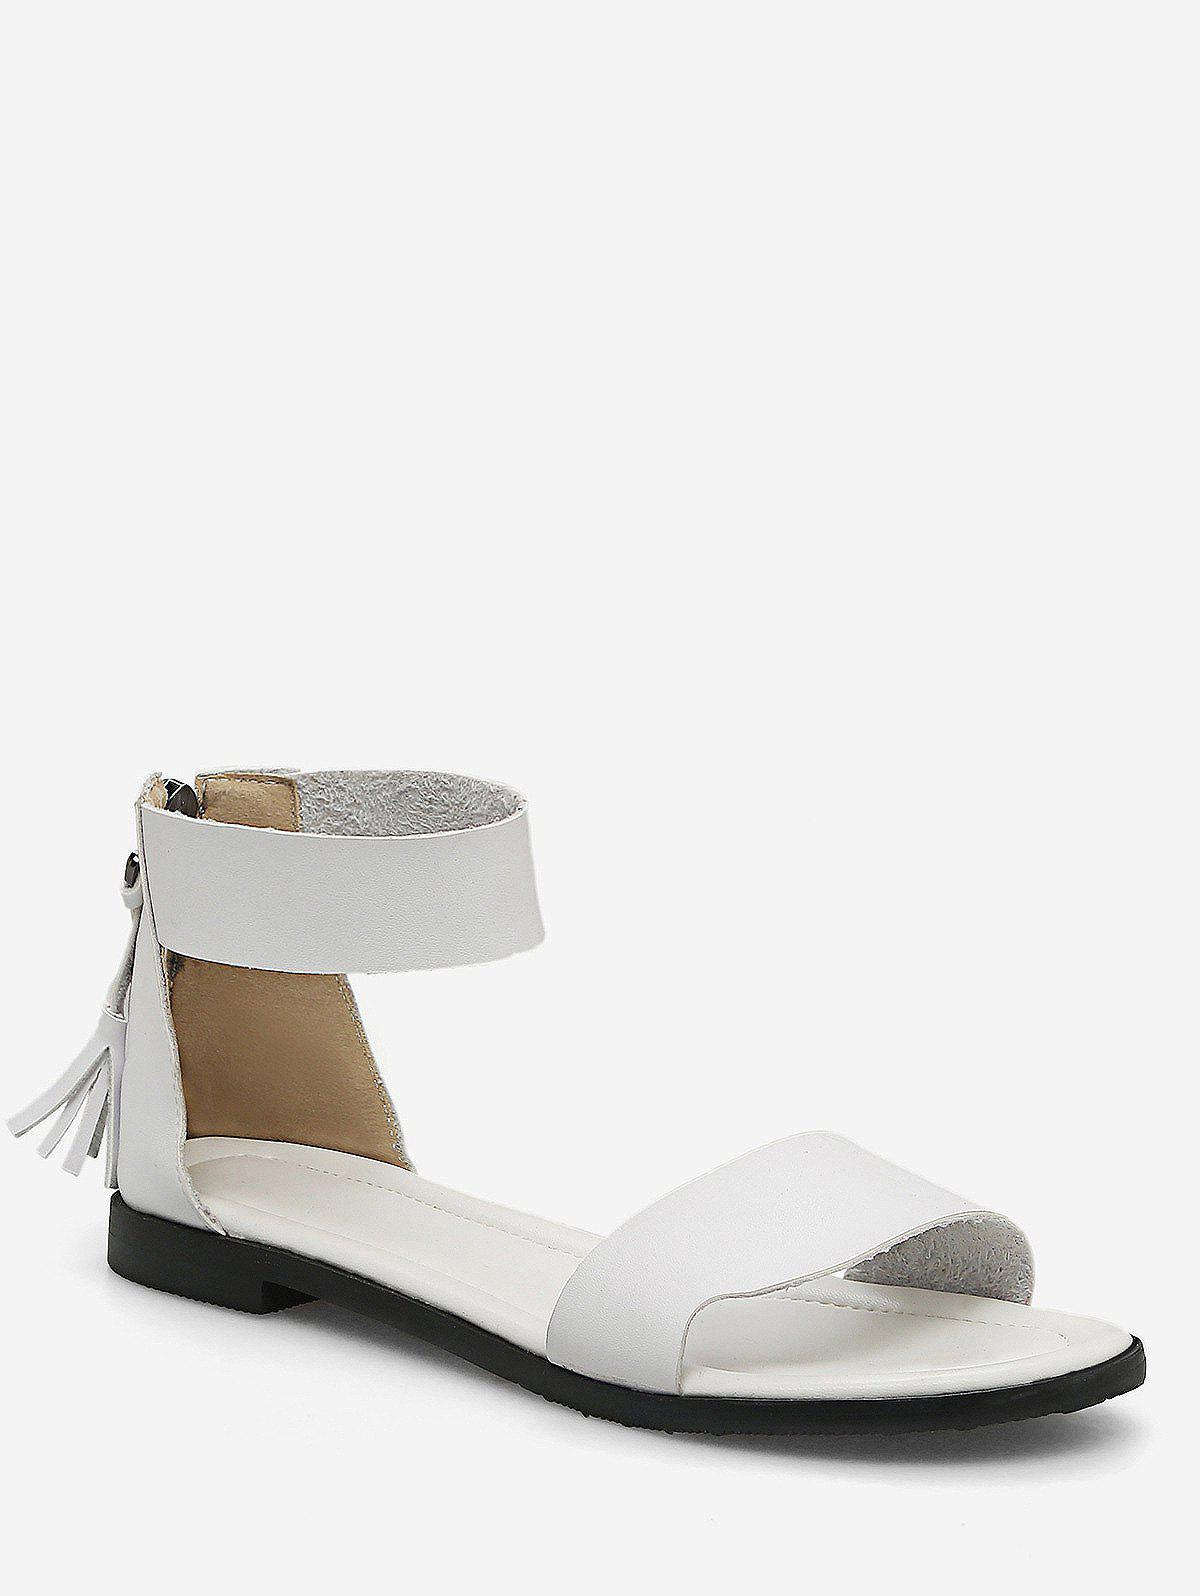 Plus Size Flat Heel Casual Vacation Sandals - WHITE 43